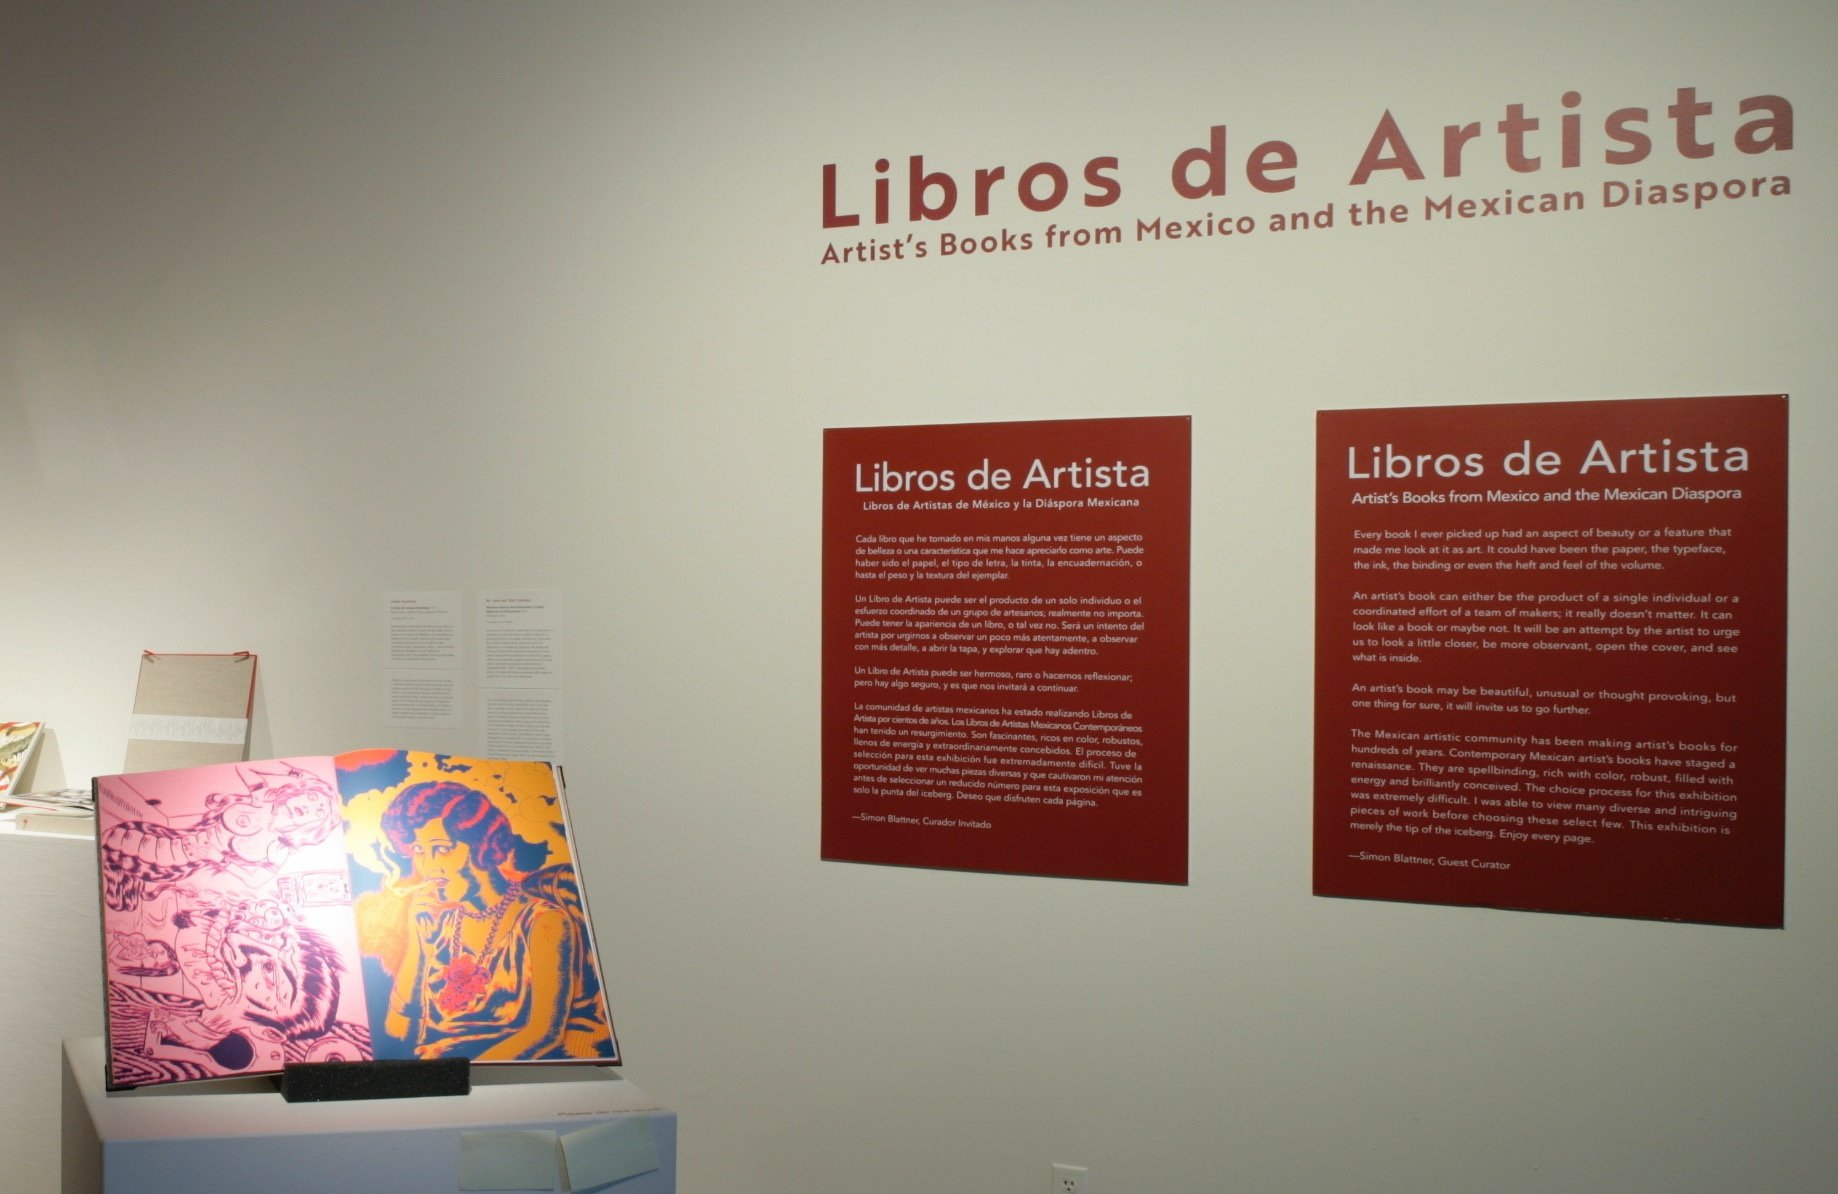 Libros de Artista Exhibition at the Sonoma Valley Museum of Art